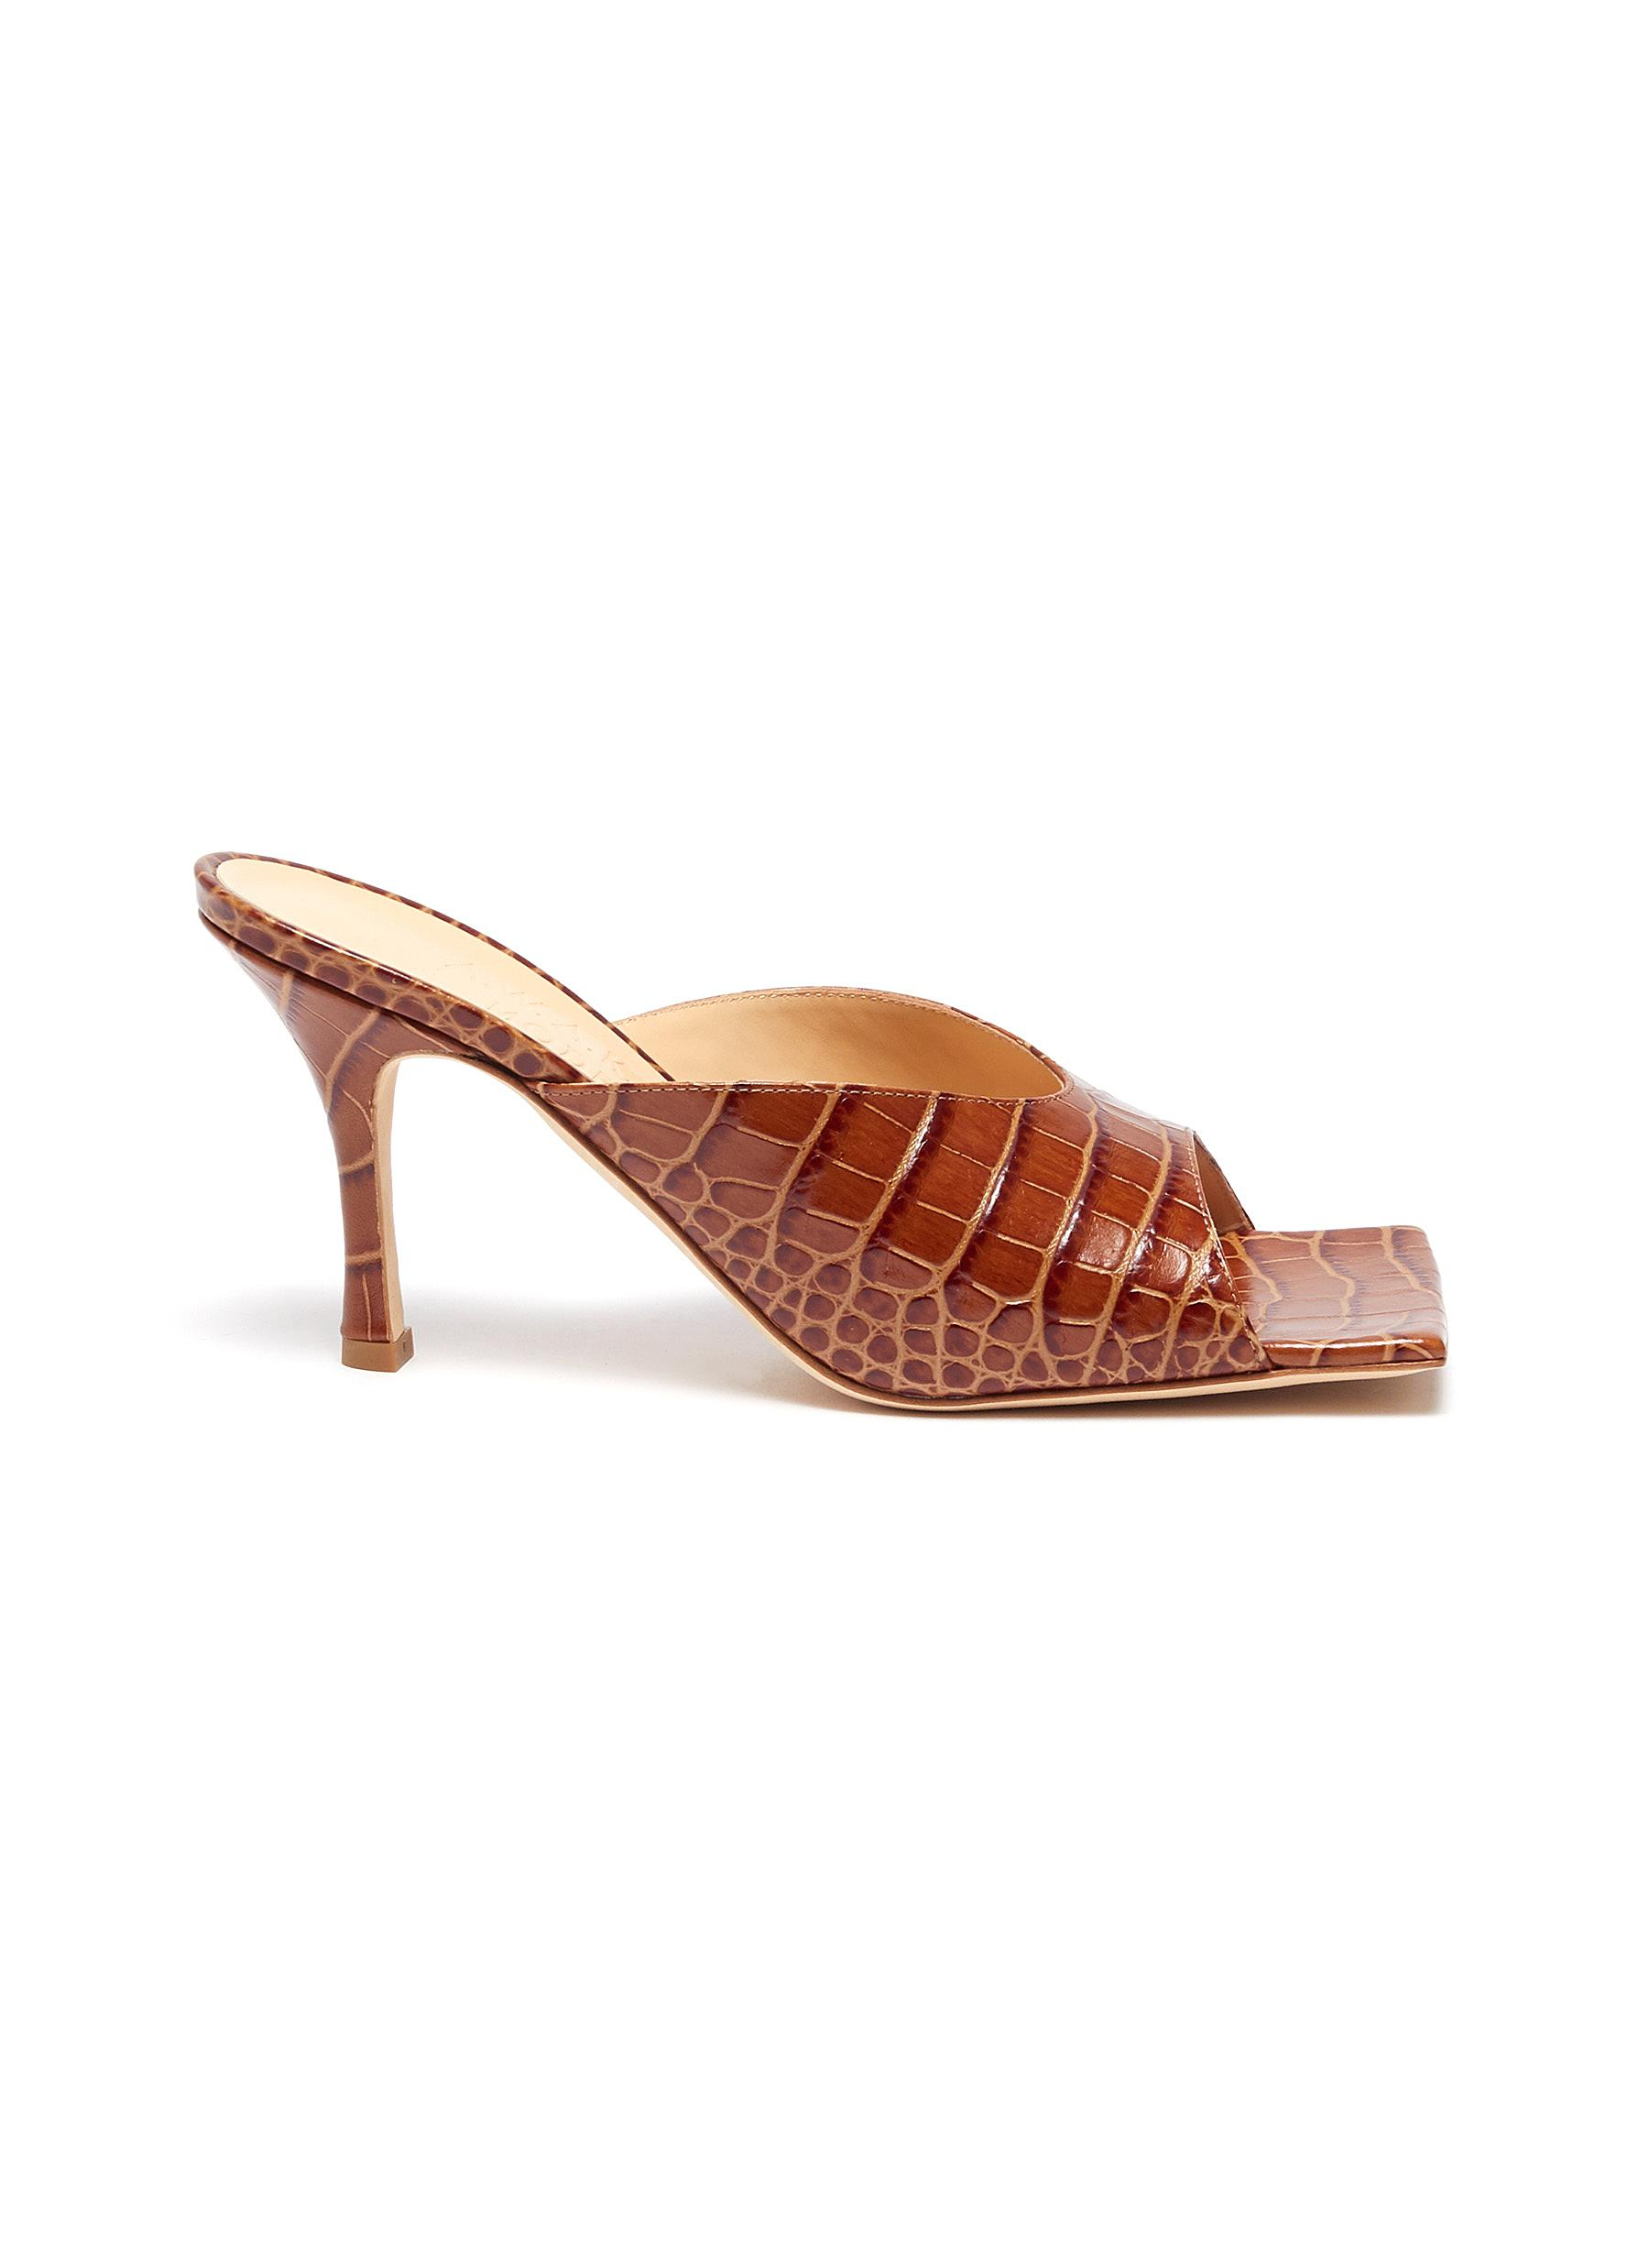 A.W.A.K.E. Mode High Heels Mariom square toe croc embossed leather mules